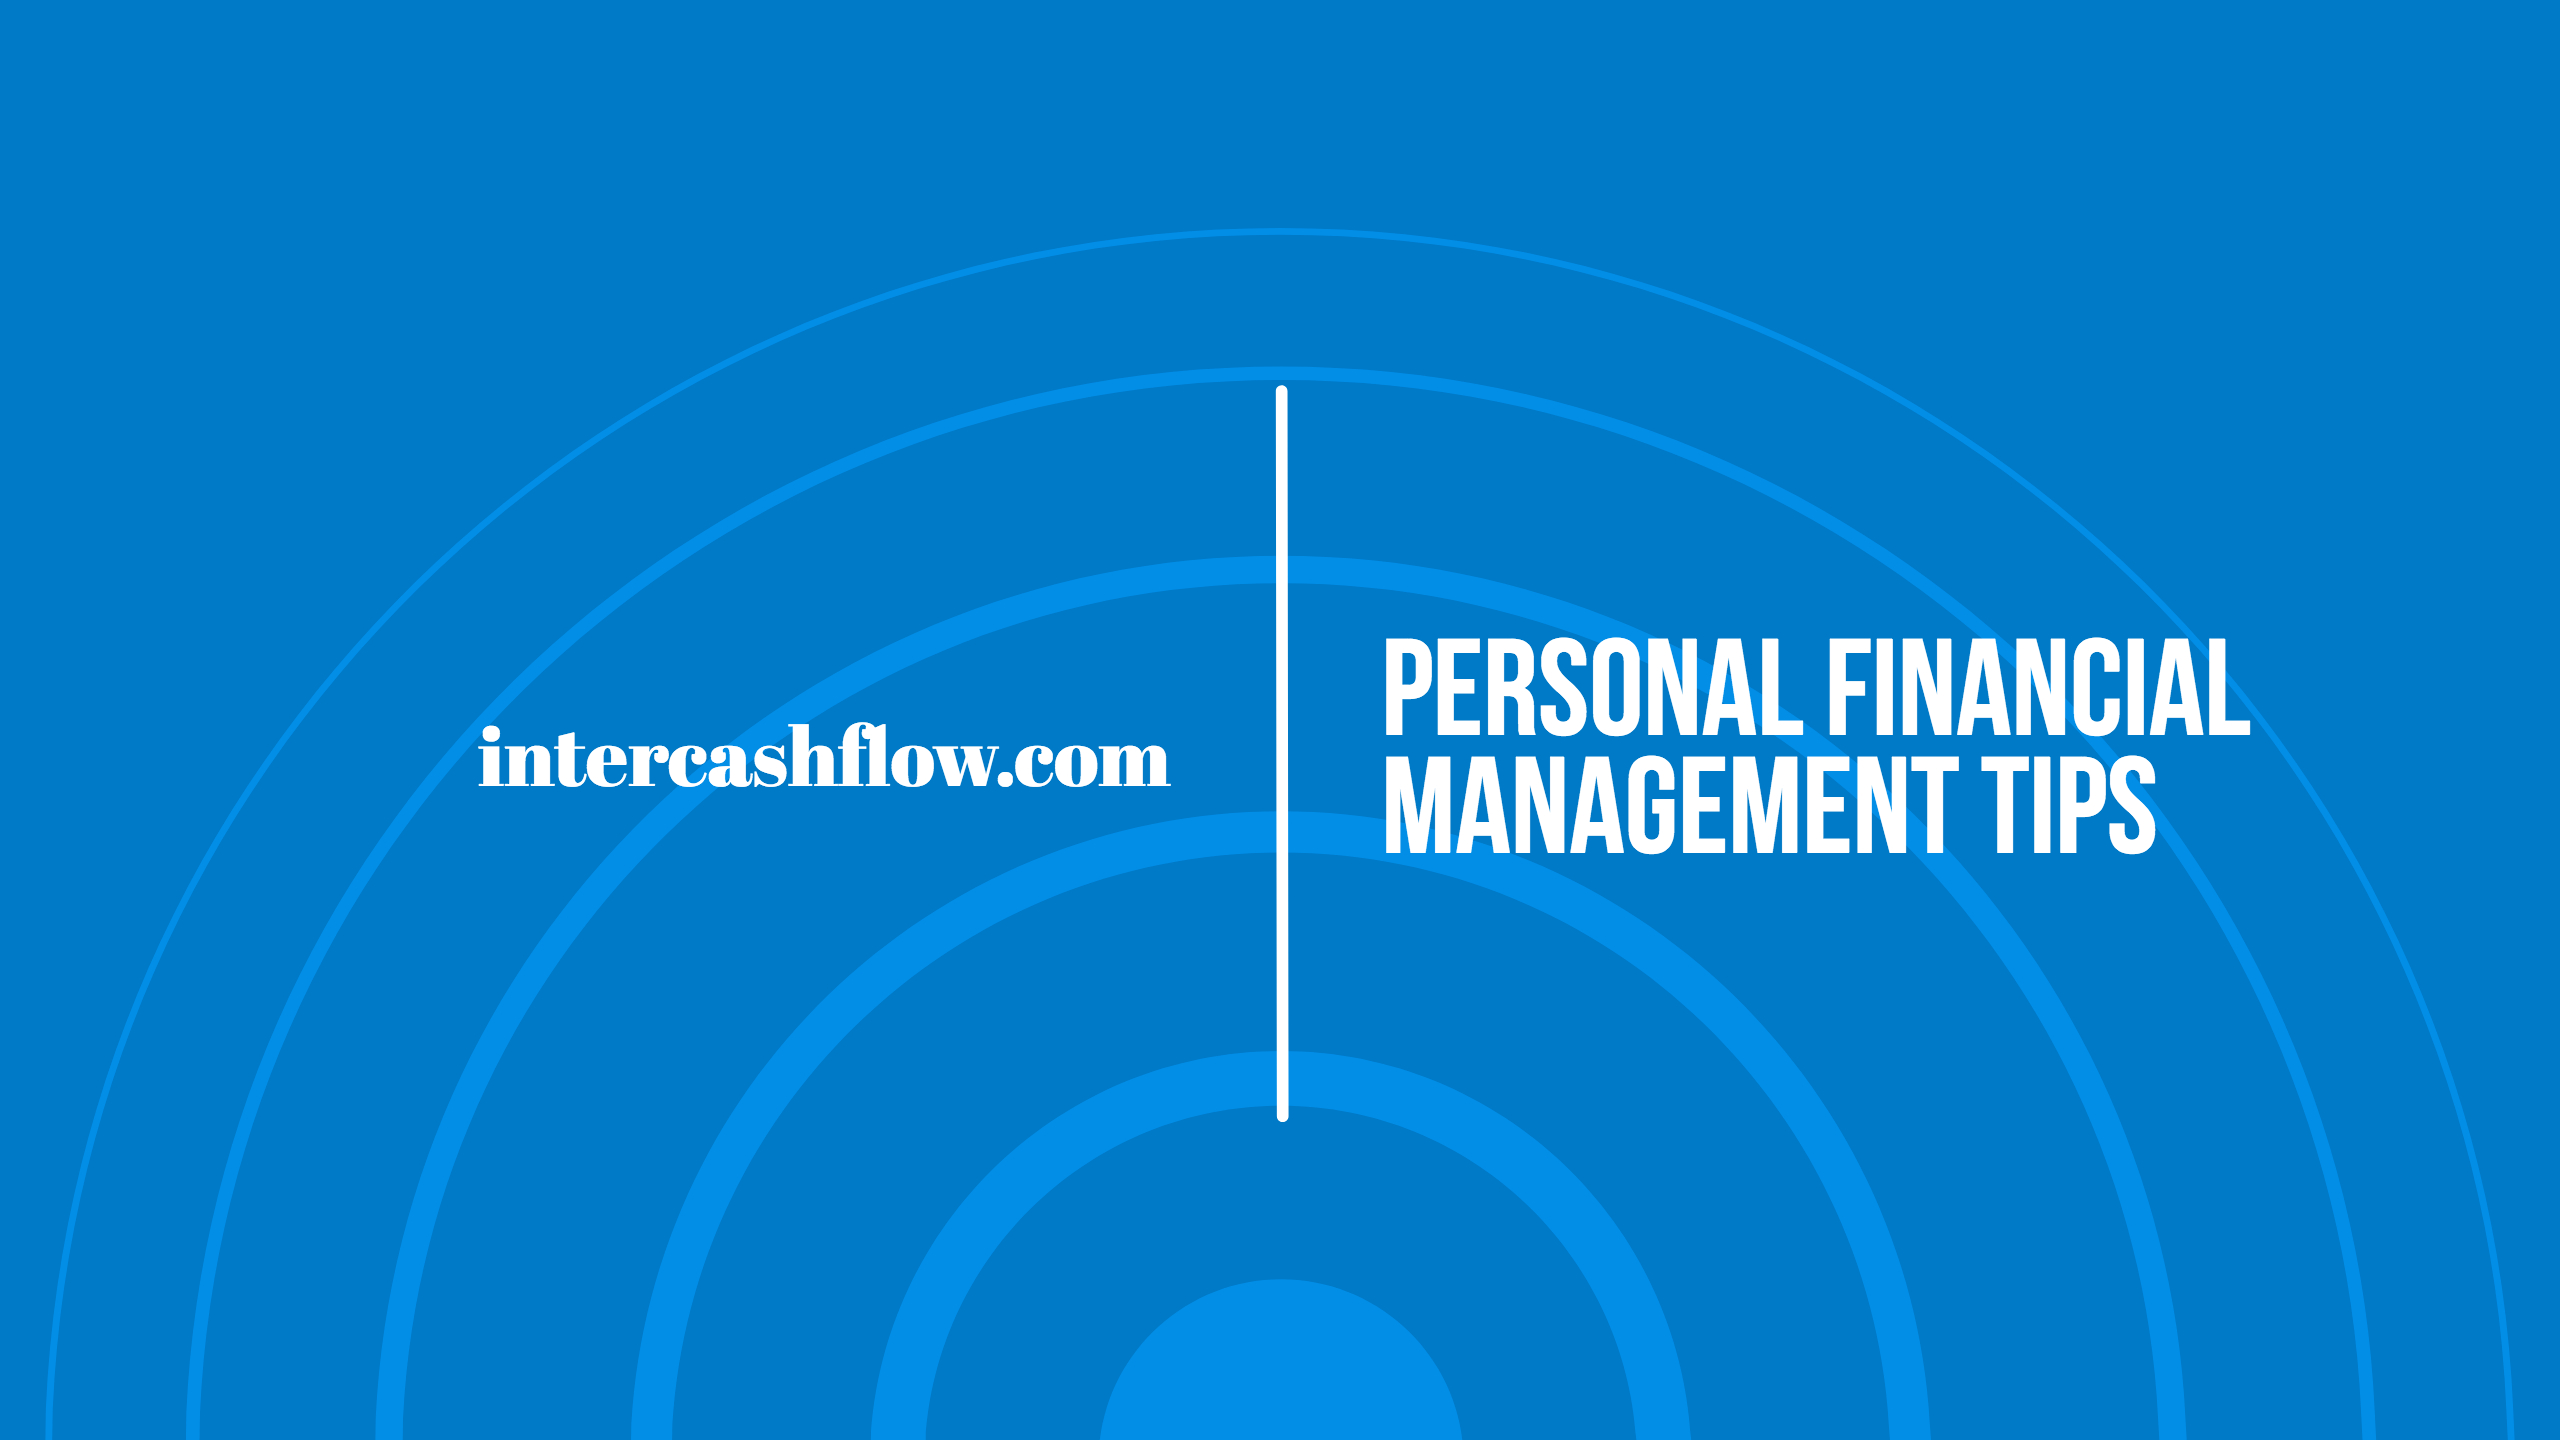 Personal financial management tips